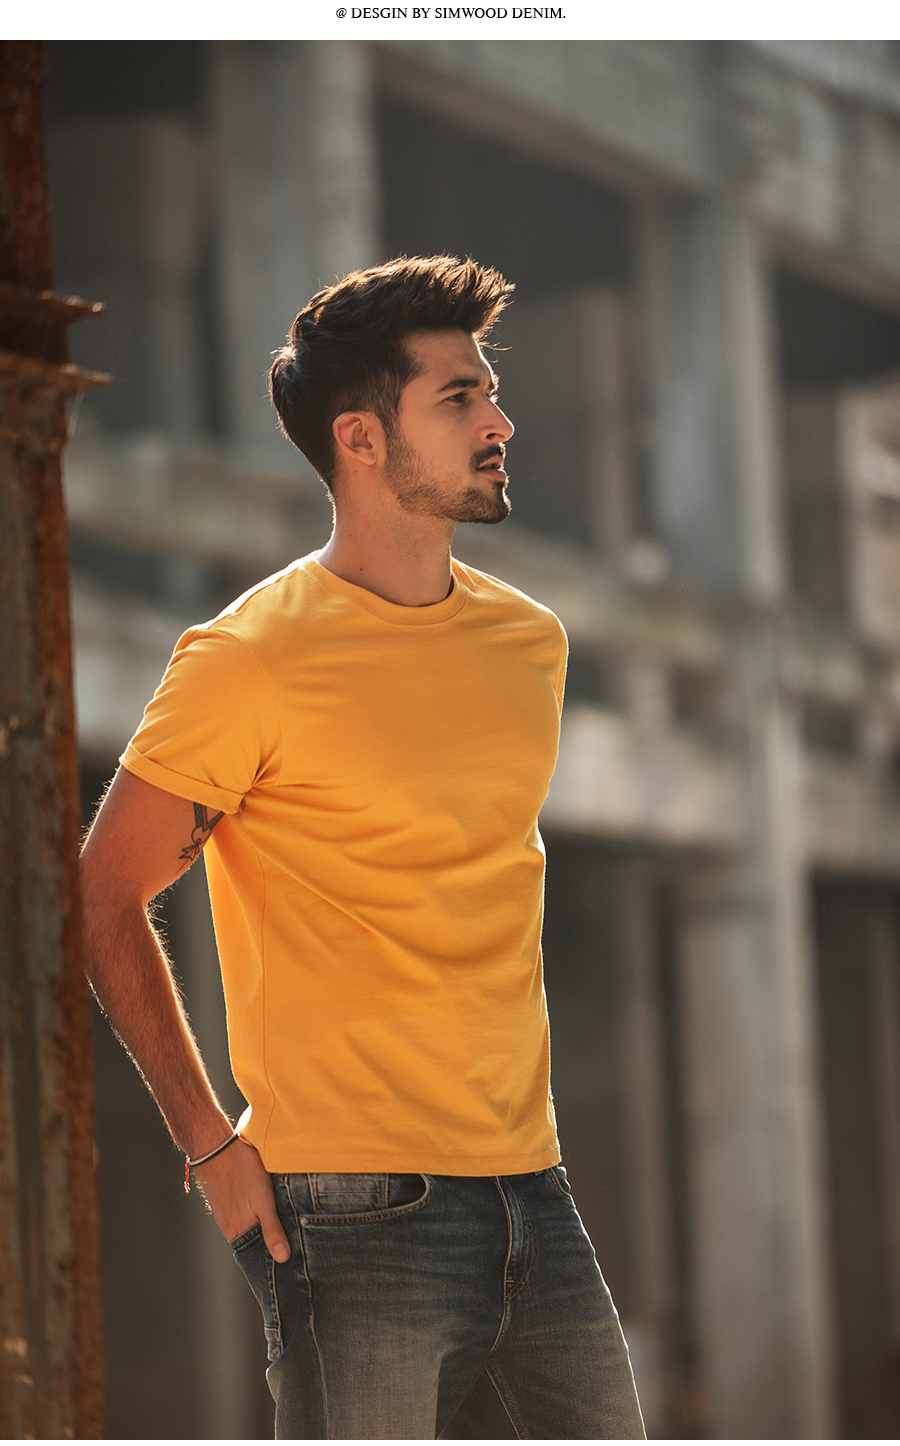 SIMWOOD 19 Summer New T-Shirt Men 100% Cotton Solid Color Casual t shirt Basics O-neck High Quality Plus Size Male Tee 190004 5